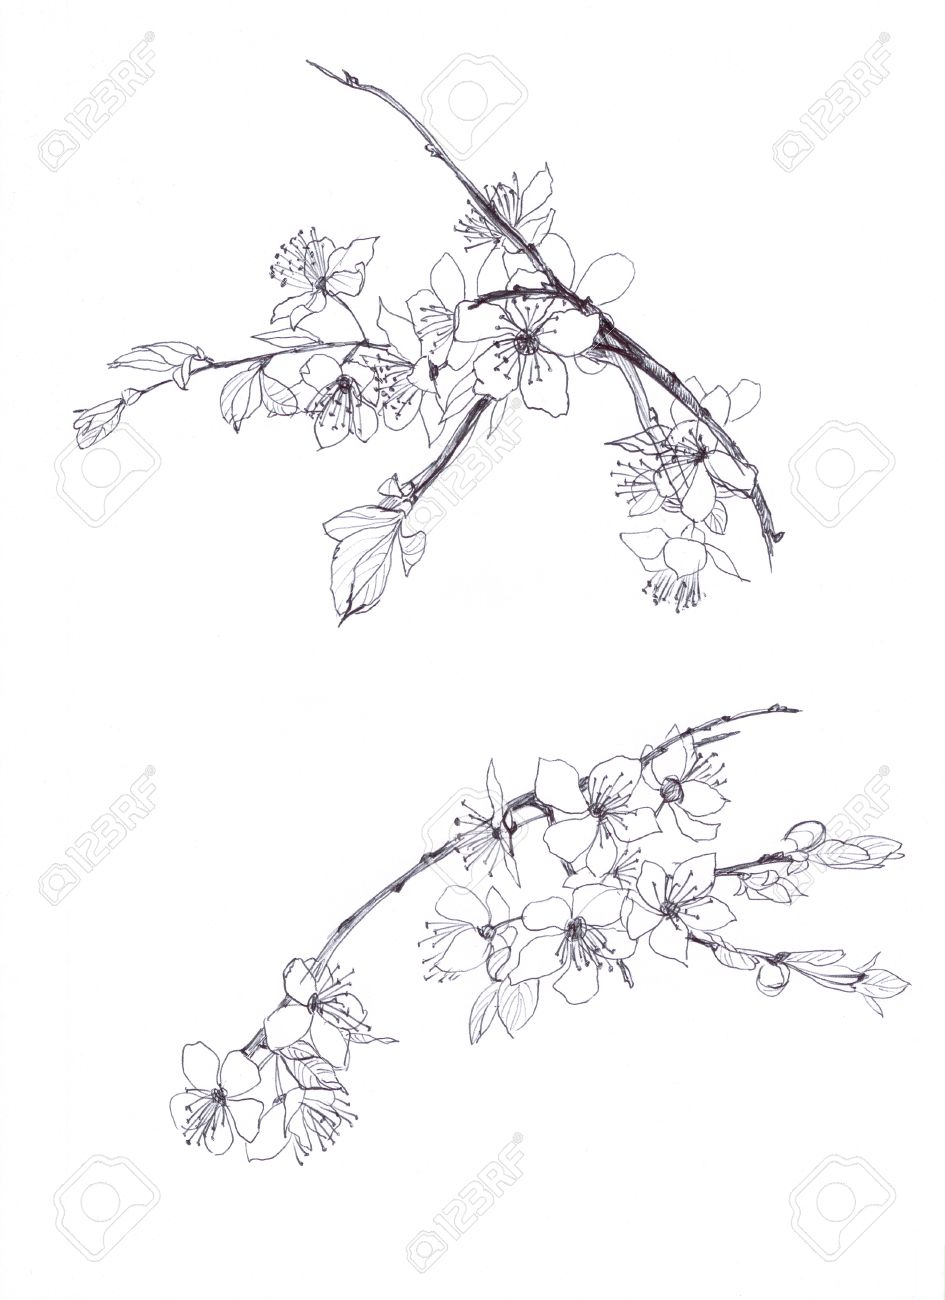 Uncategorized Cherry Blossom Branch Drawing cherry blossom hand drawn pencil stock photo picture and royalty 28232545